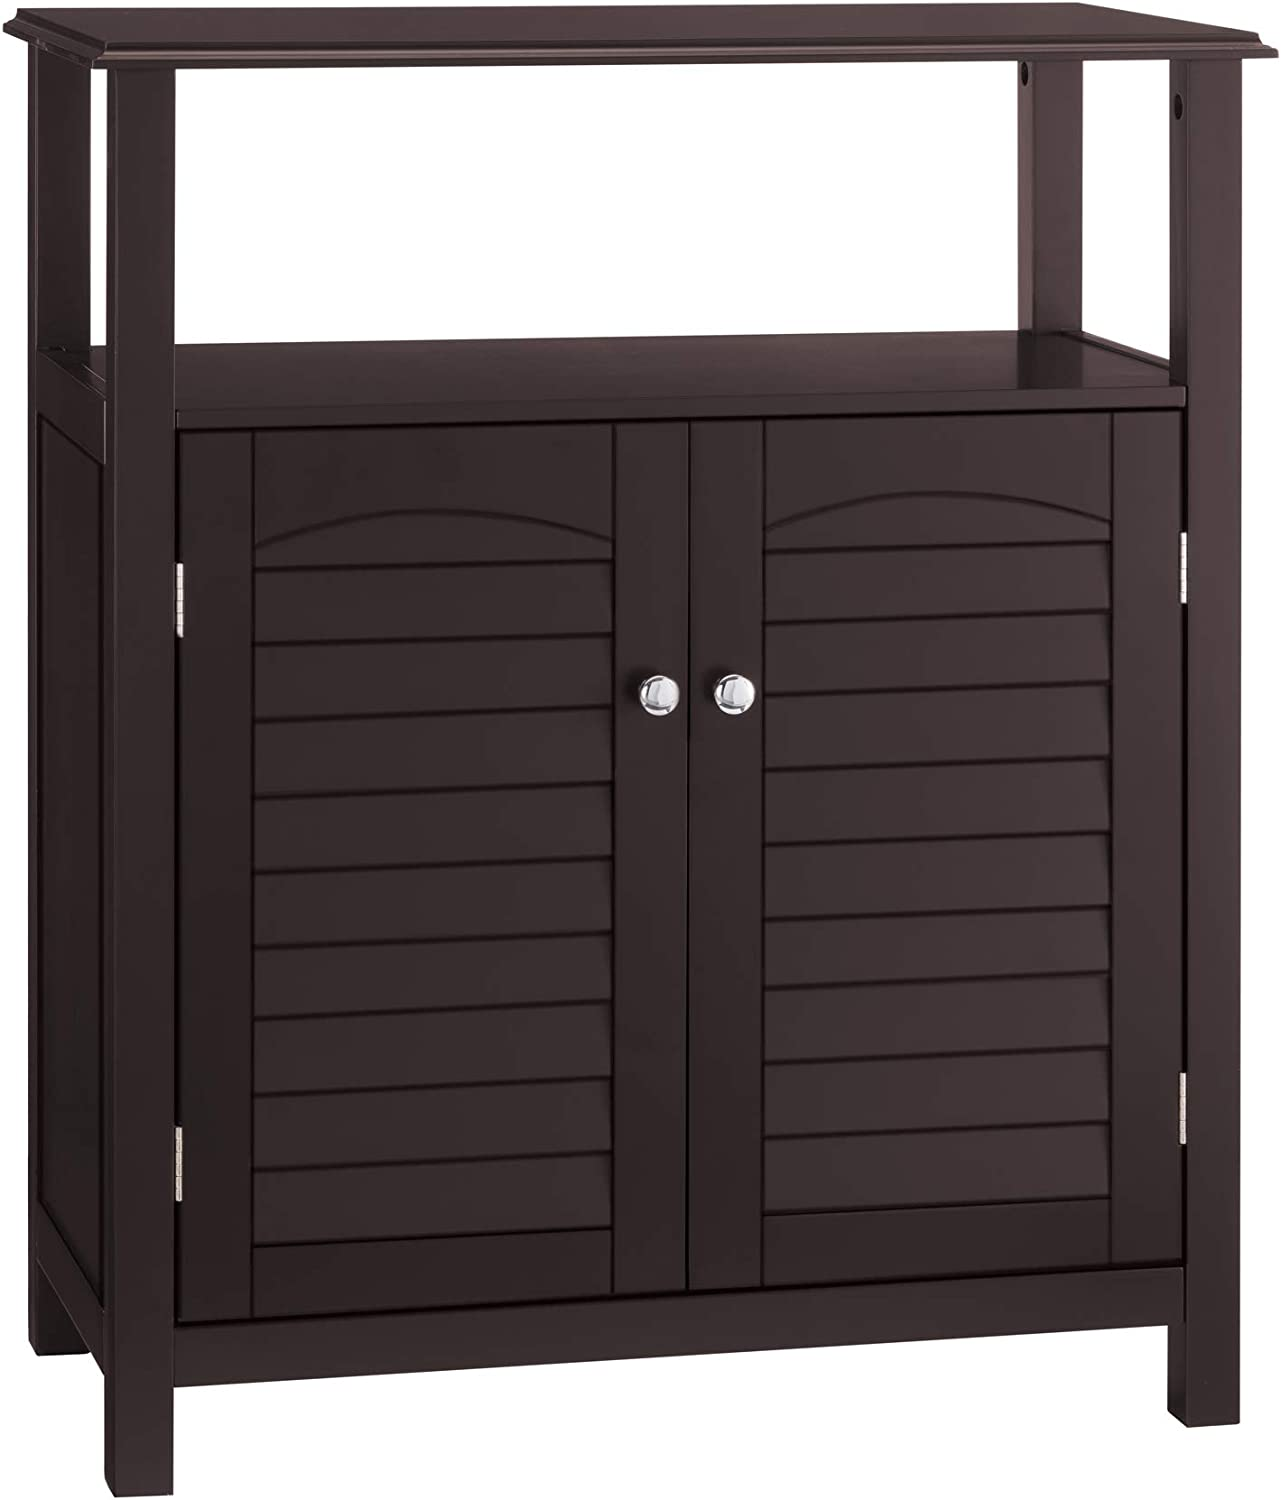 Elegant Home Fashion Danbury Freestanding Cabinet with 2 Doors-Espresso